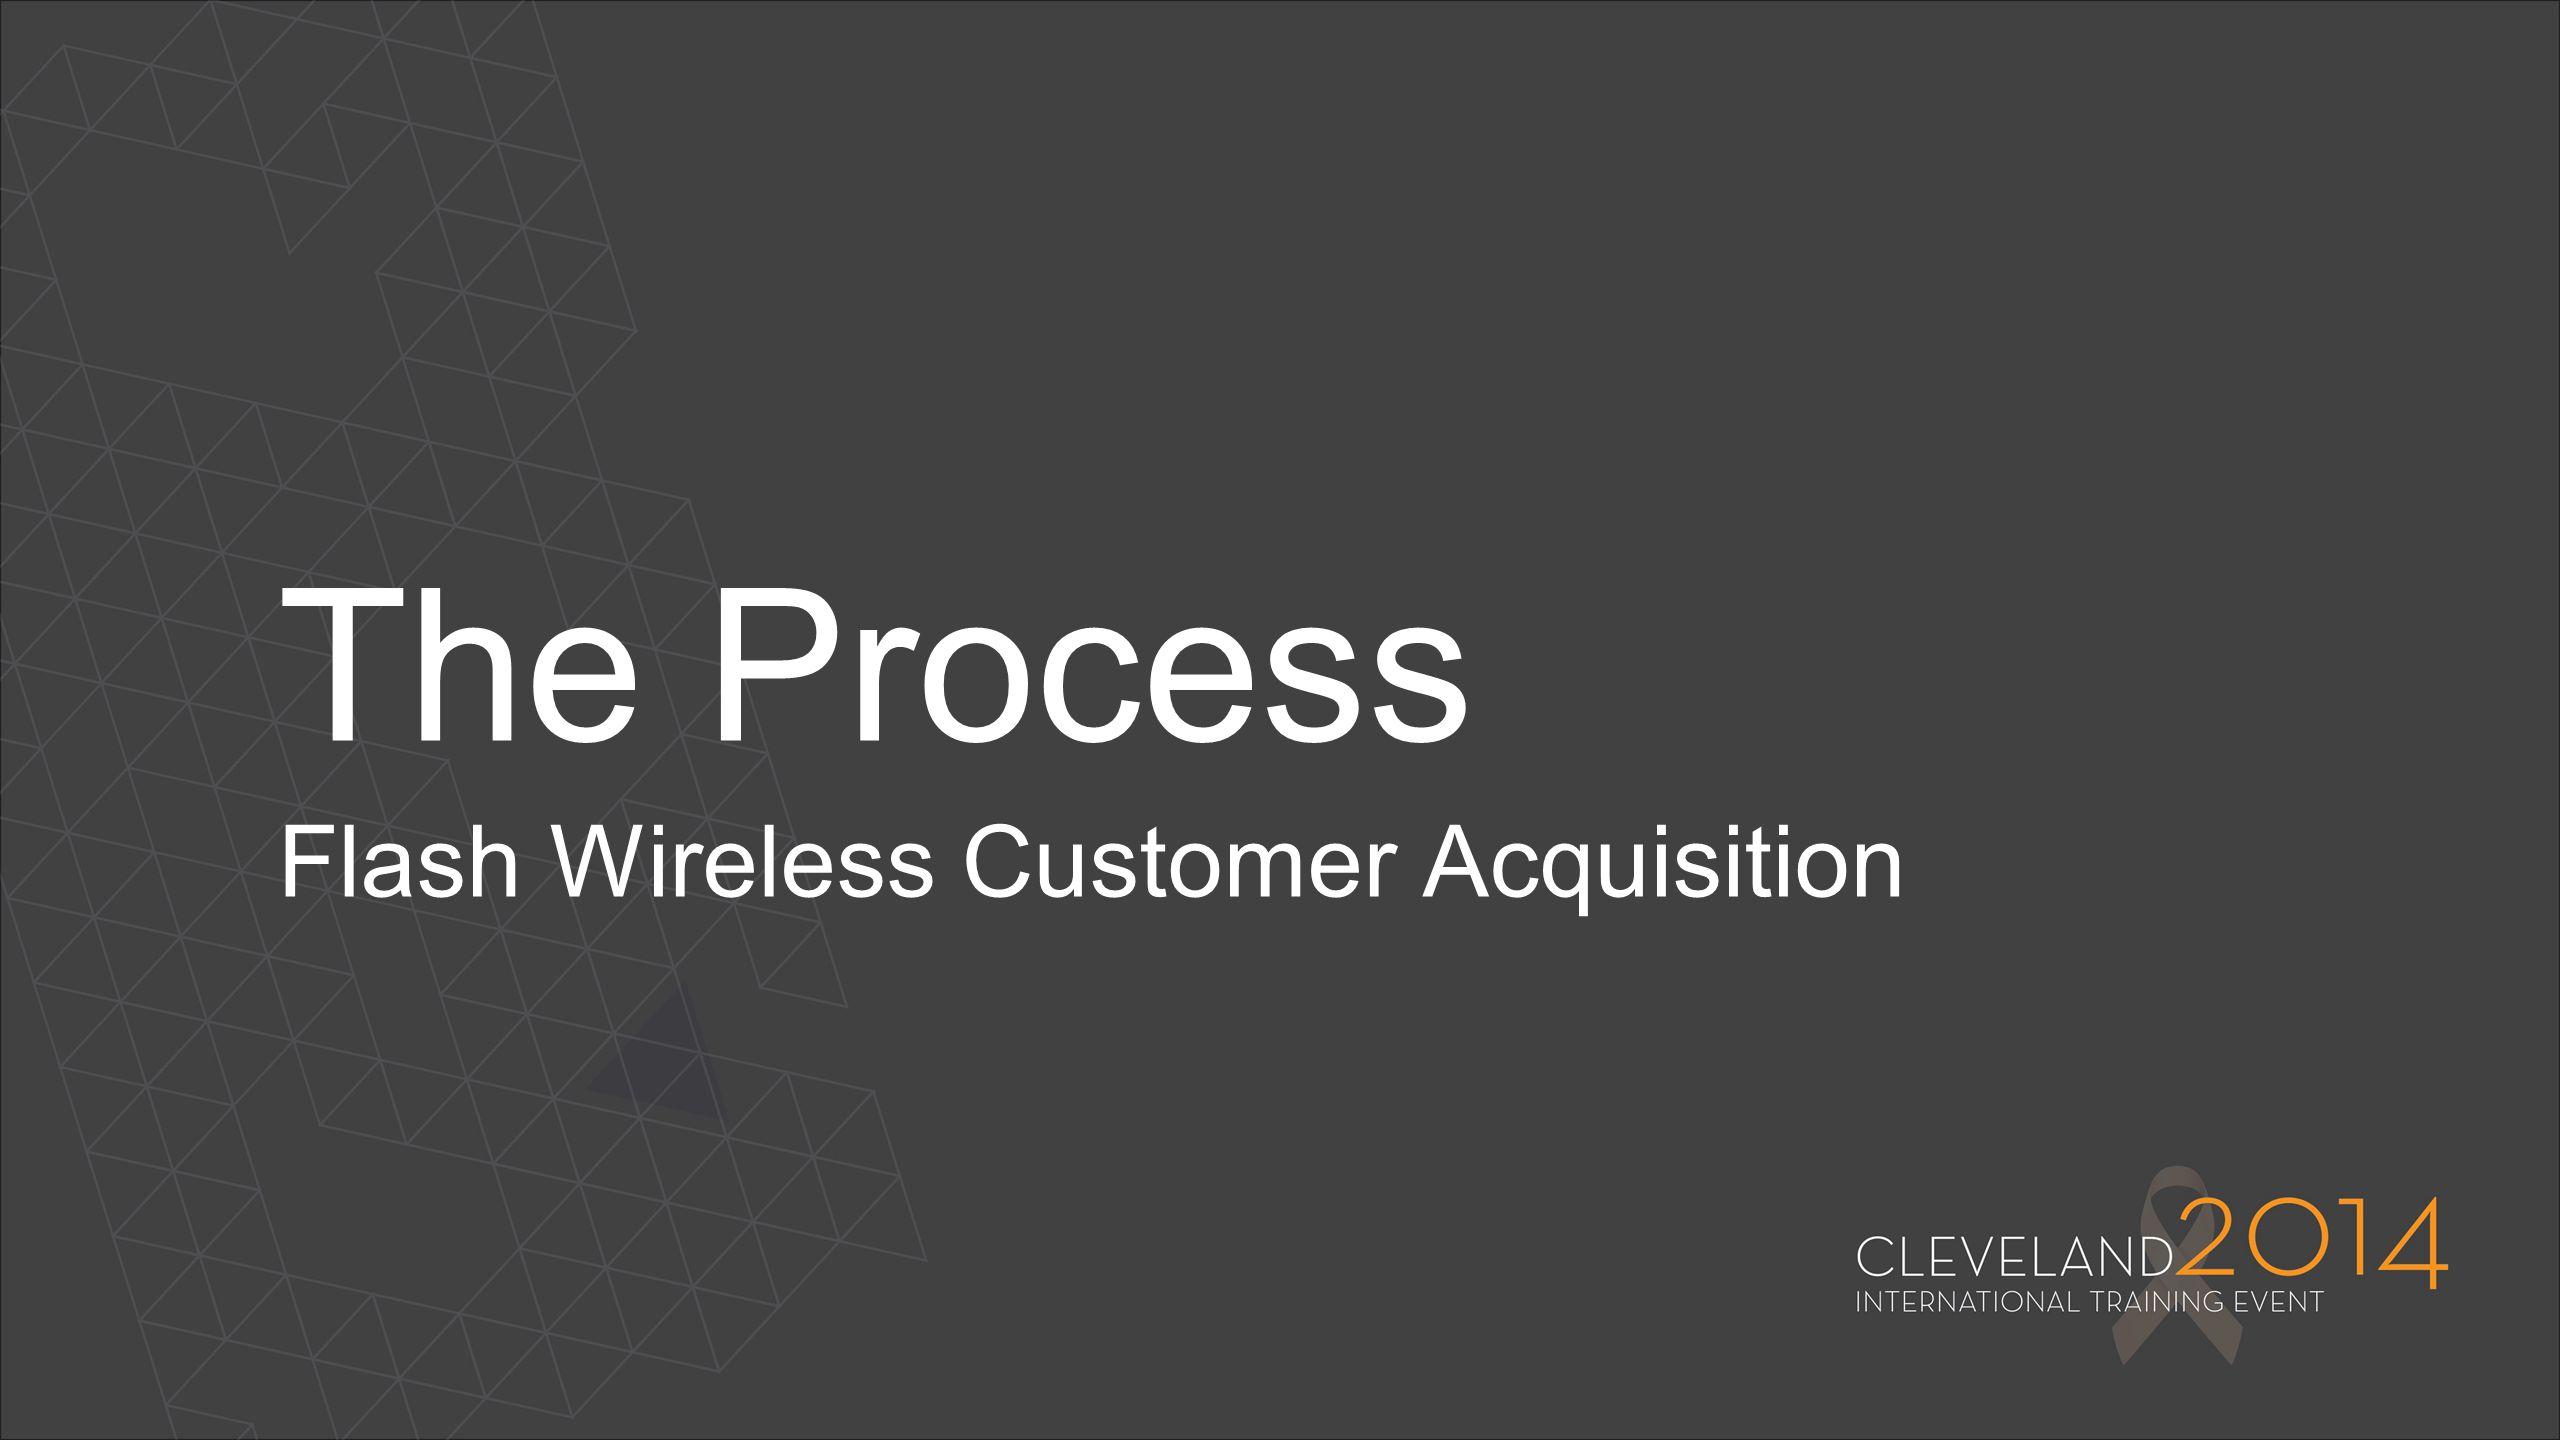 The Process Flash Wireless Customer Acquisition